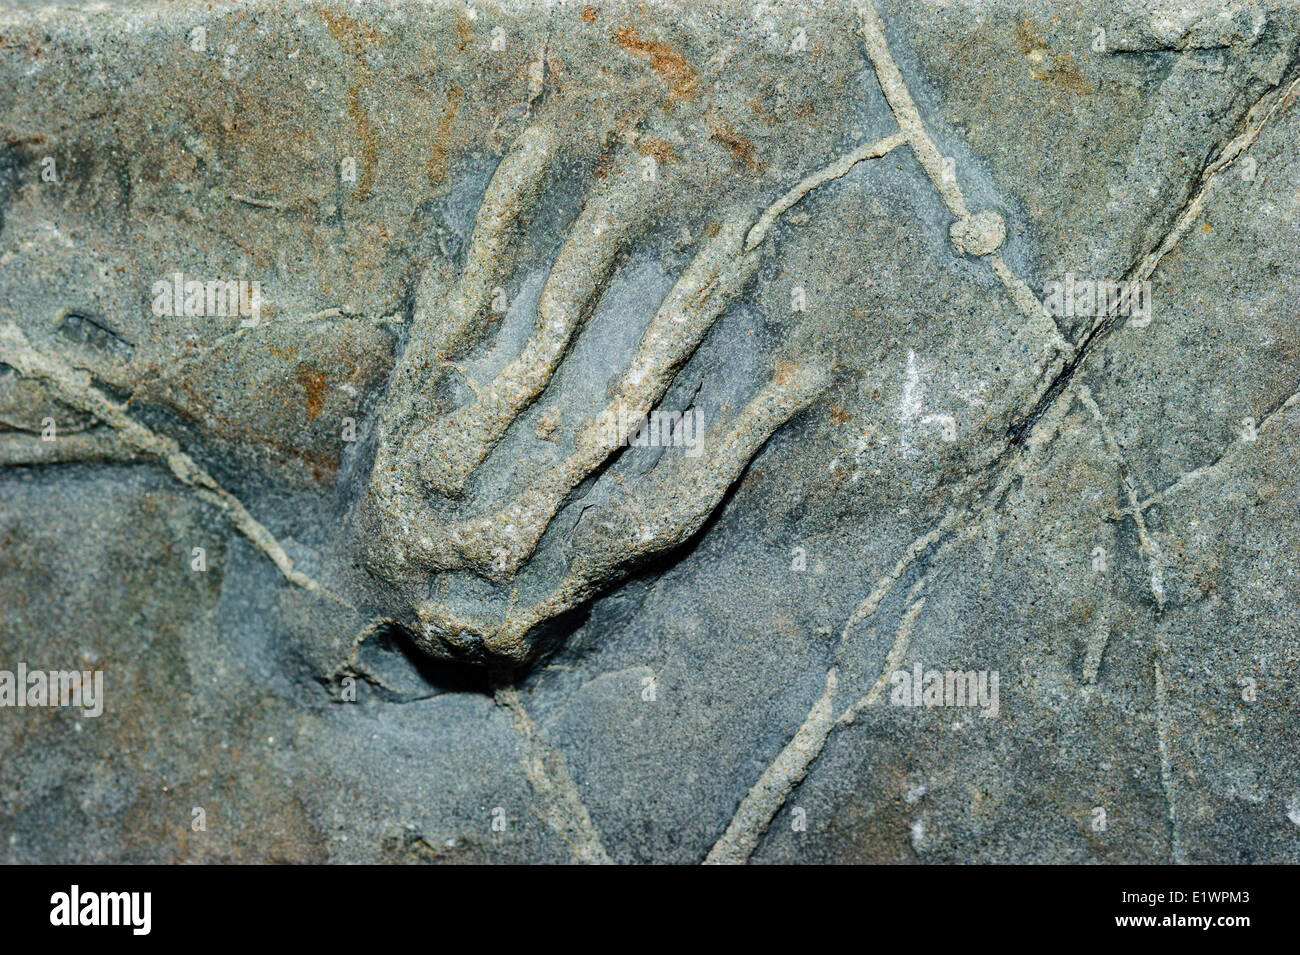 Fossil tetrapod footprint/trackway frog ancestor dating 300 million years back to the Coal Age's carboniferous - Stock Image